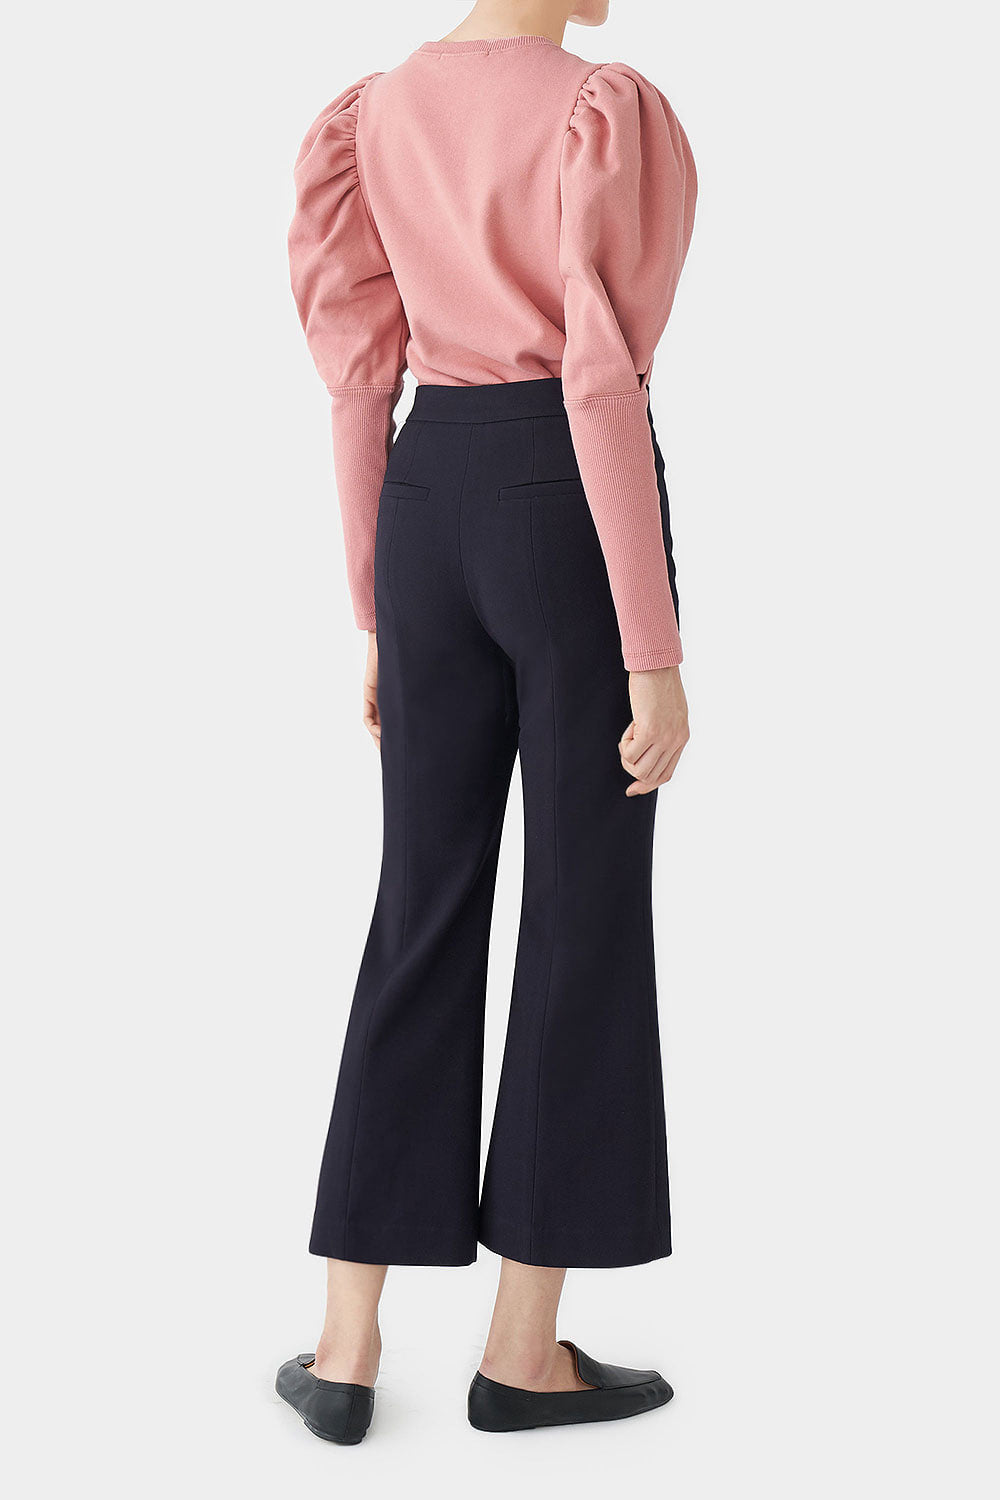 NAVY TALLIE FLARED PANTS